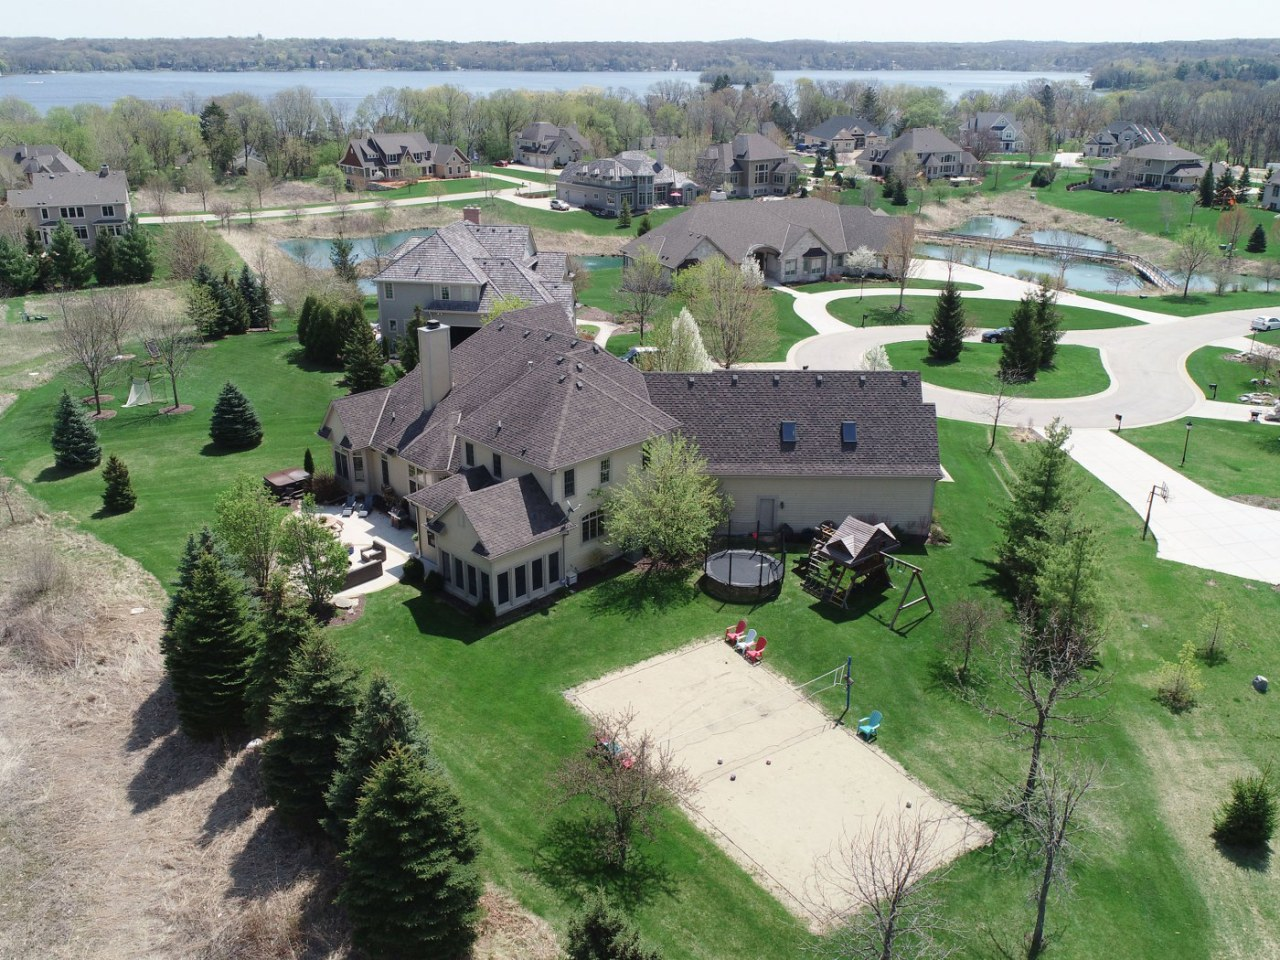 2035 Coachlight Ct, Delafield, Wisconsin 53018, 5 Bedrooms Bedrooms, 12 Rooms Rooms,4 BathroomsBathrooms,Single-Family,For Sale,Coachlight Ct,1643548